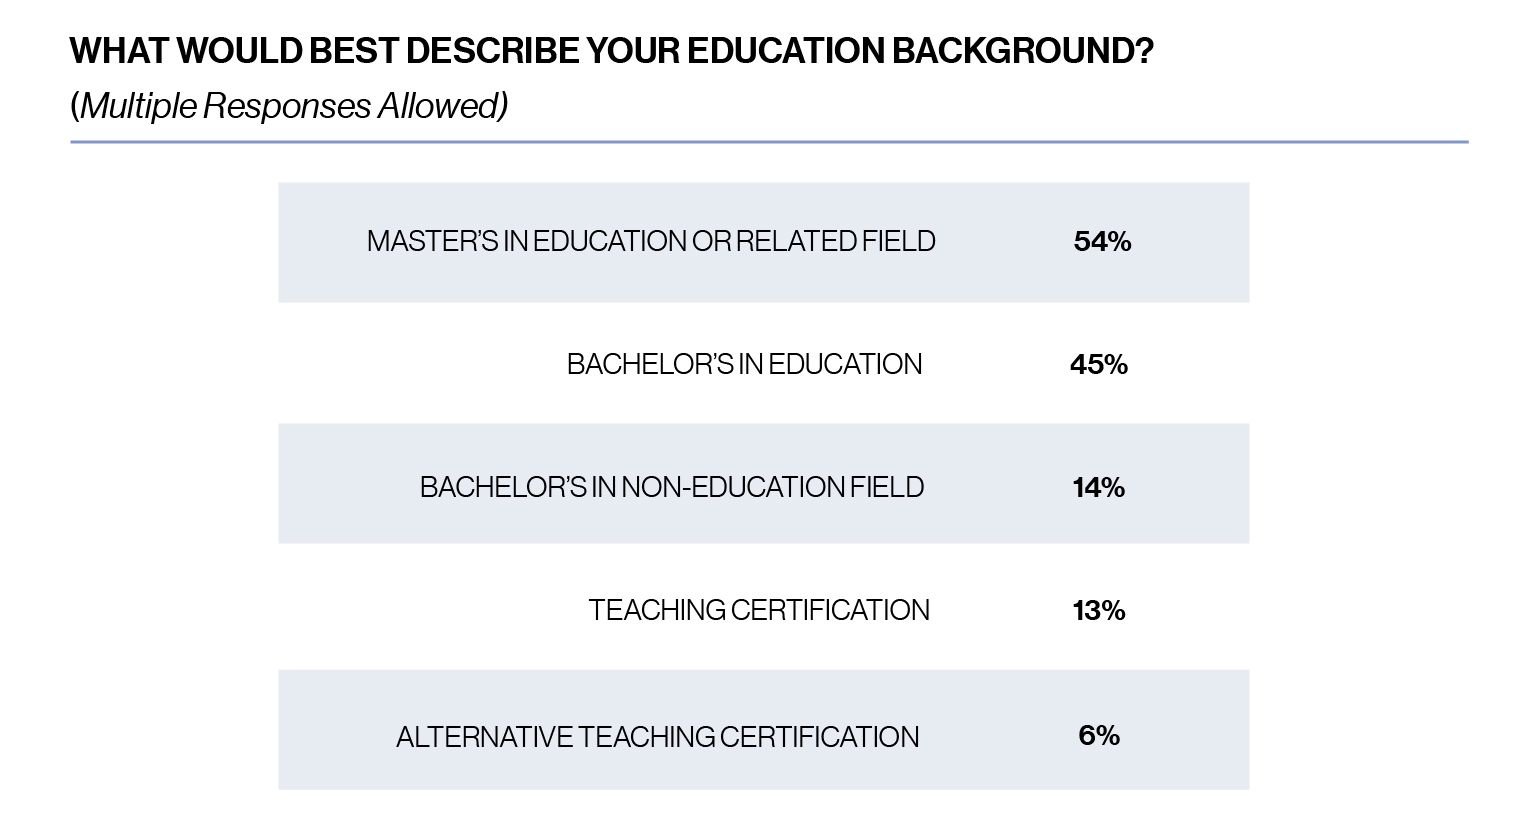 Chart: What would best describe your (the teacher's) education background? Multiple responses allowed.54% Masters in Education or related field, 45% Bachelor's in Education, 14% Bachelor's in non-Education field, 13% teaching certification, 6% alternative teaching certification.